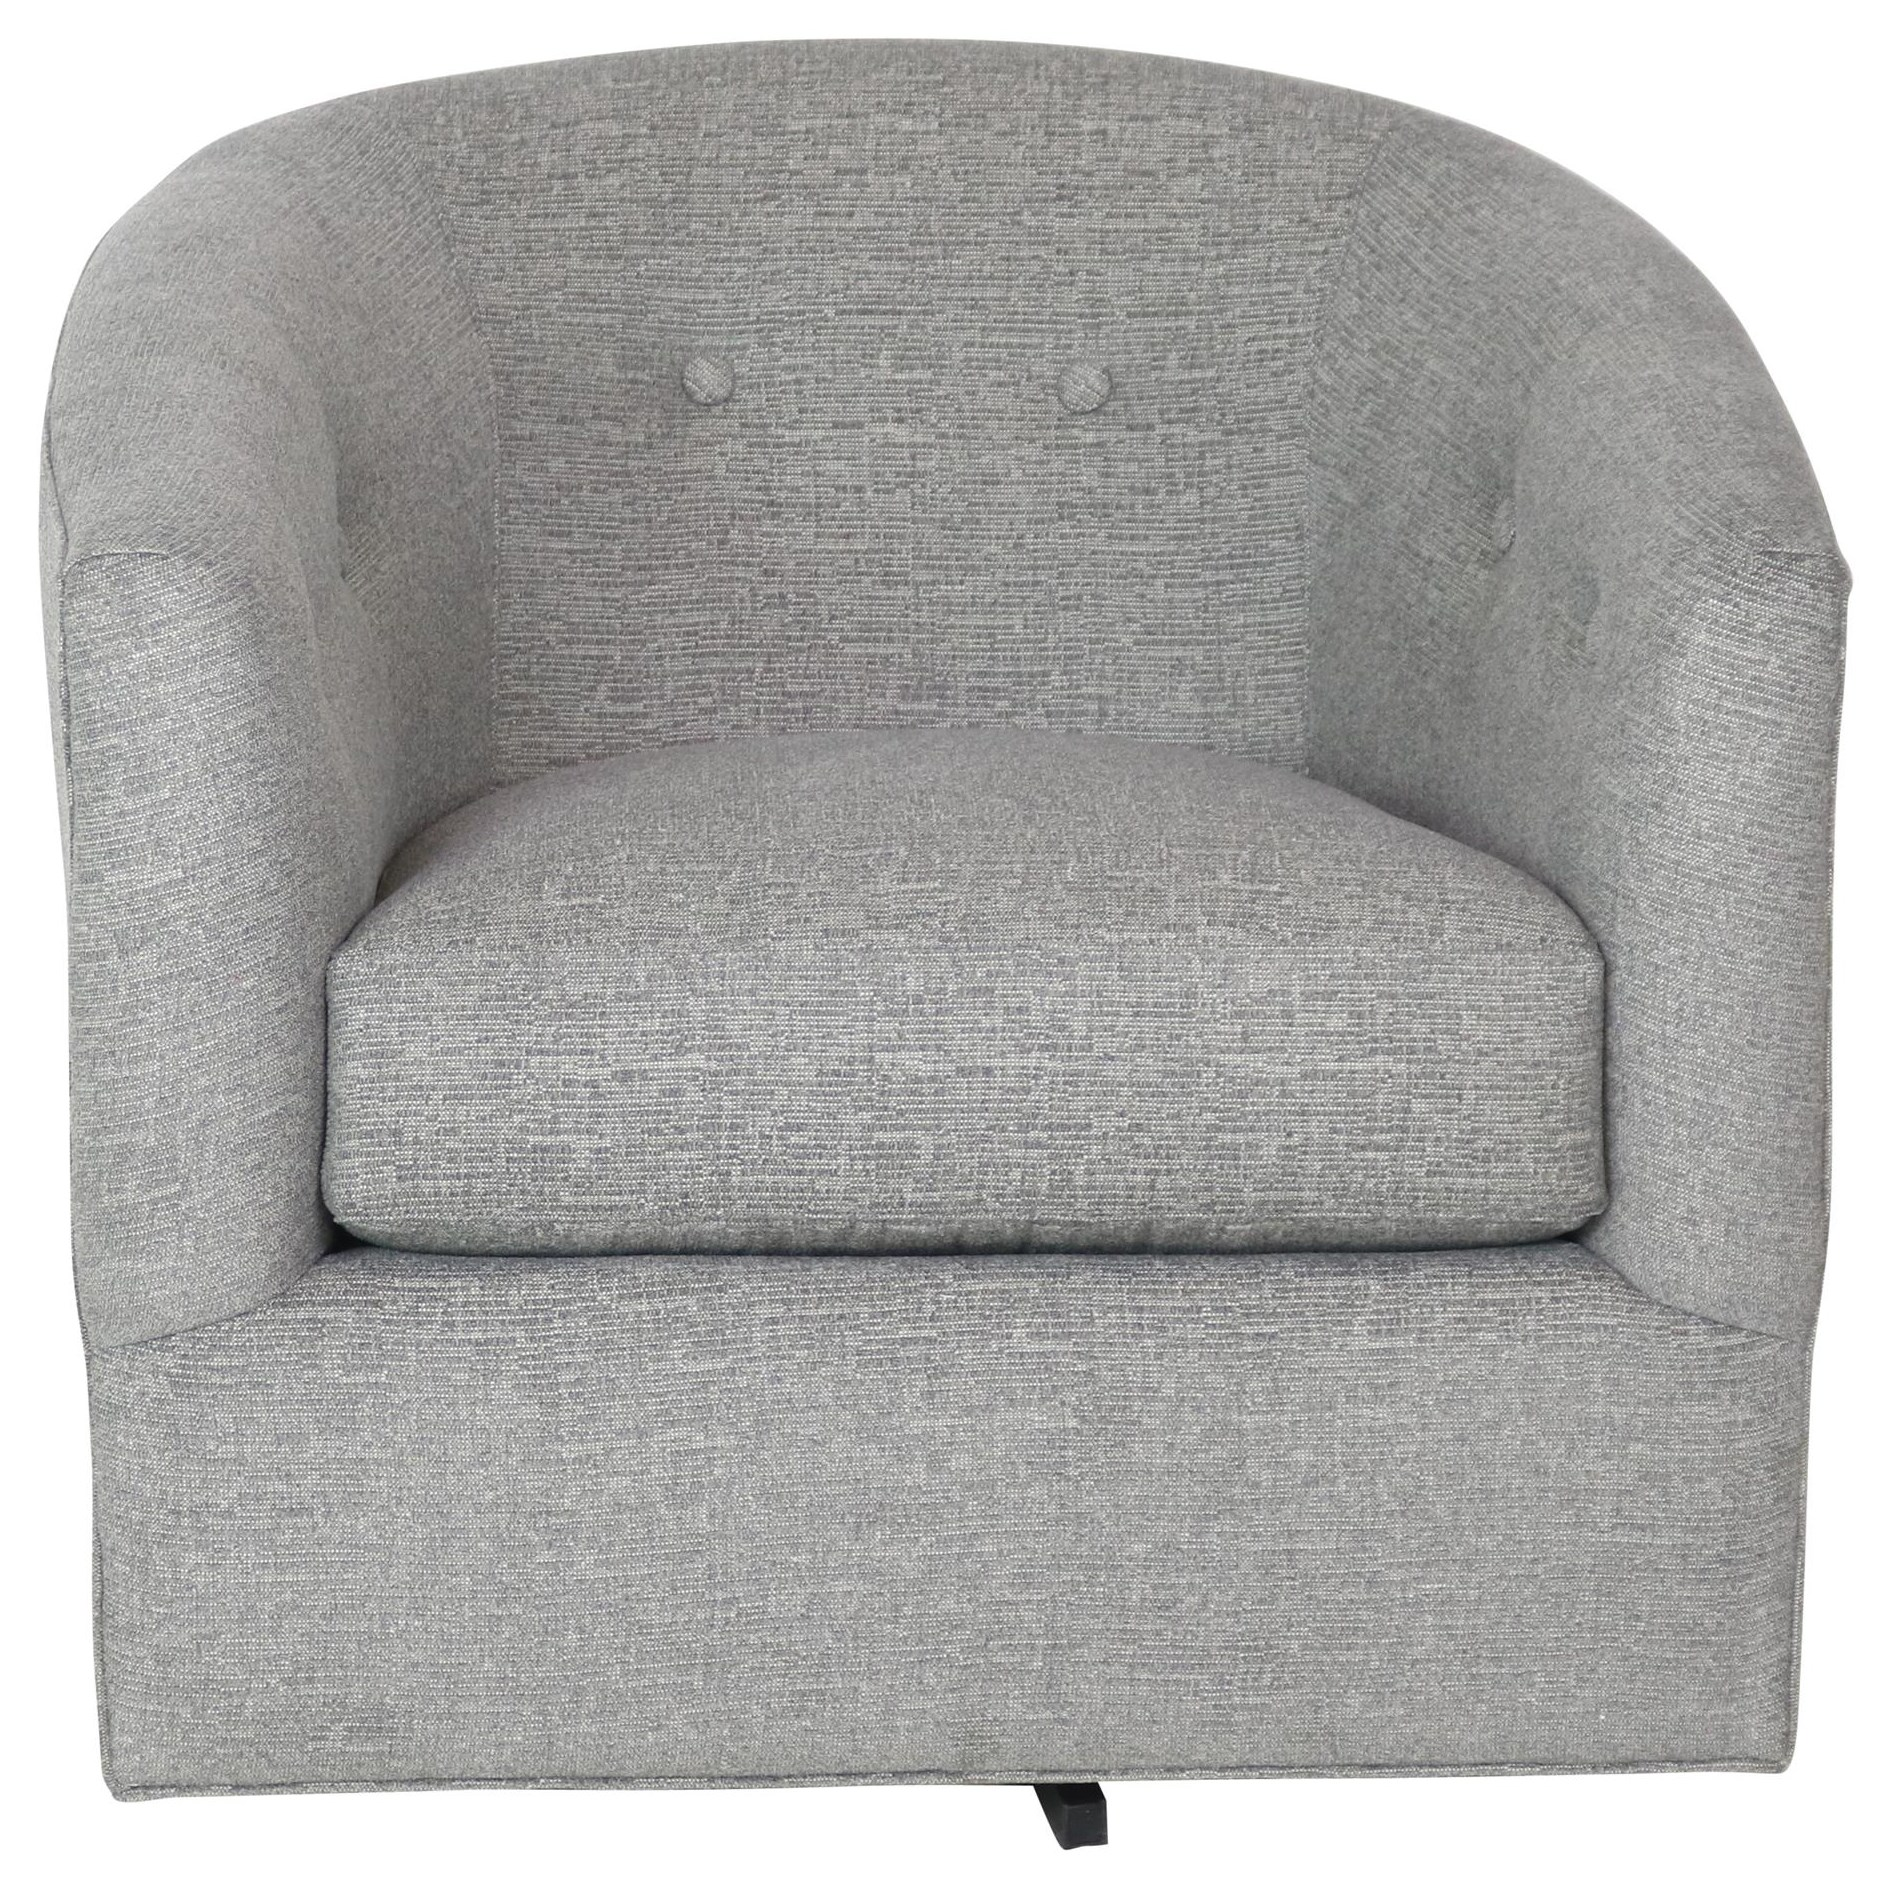 094110 Swivel Chair by Cozi Life Upholstery at Sprintz Furniture